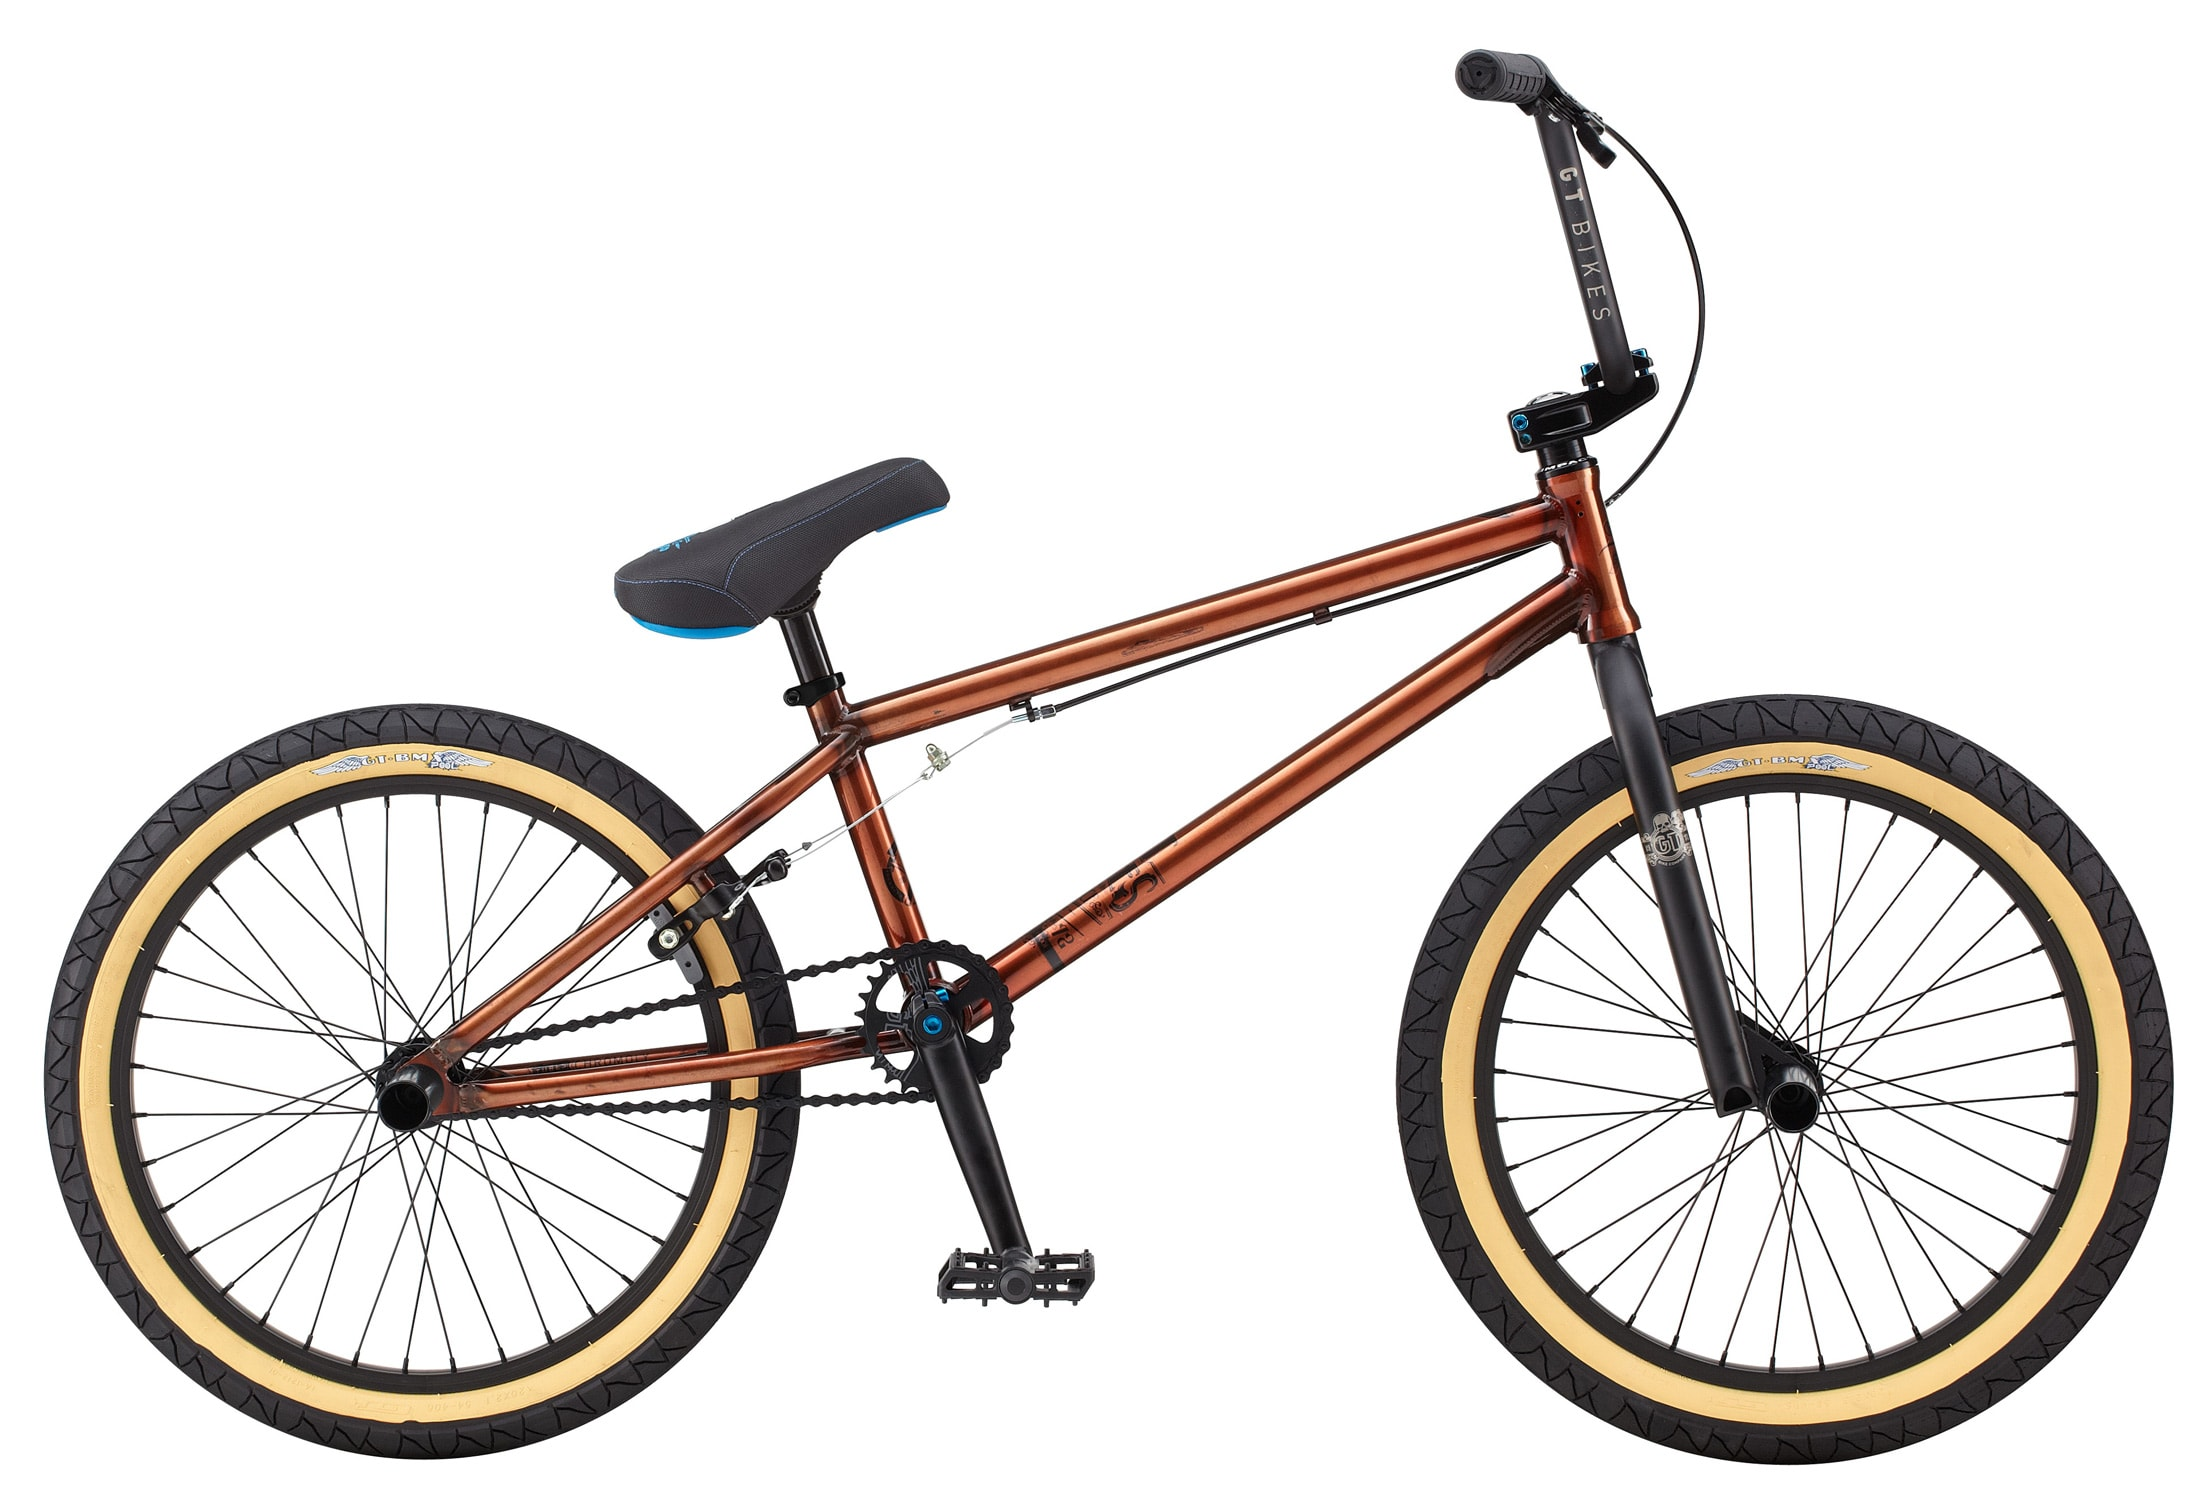 Bikes Gt Bicycles Off GT Compe BMX Bike